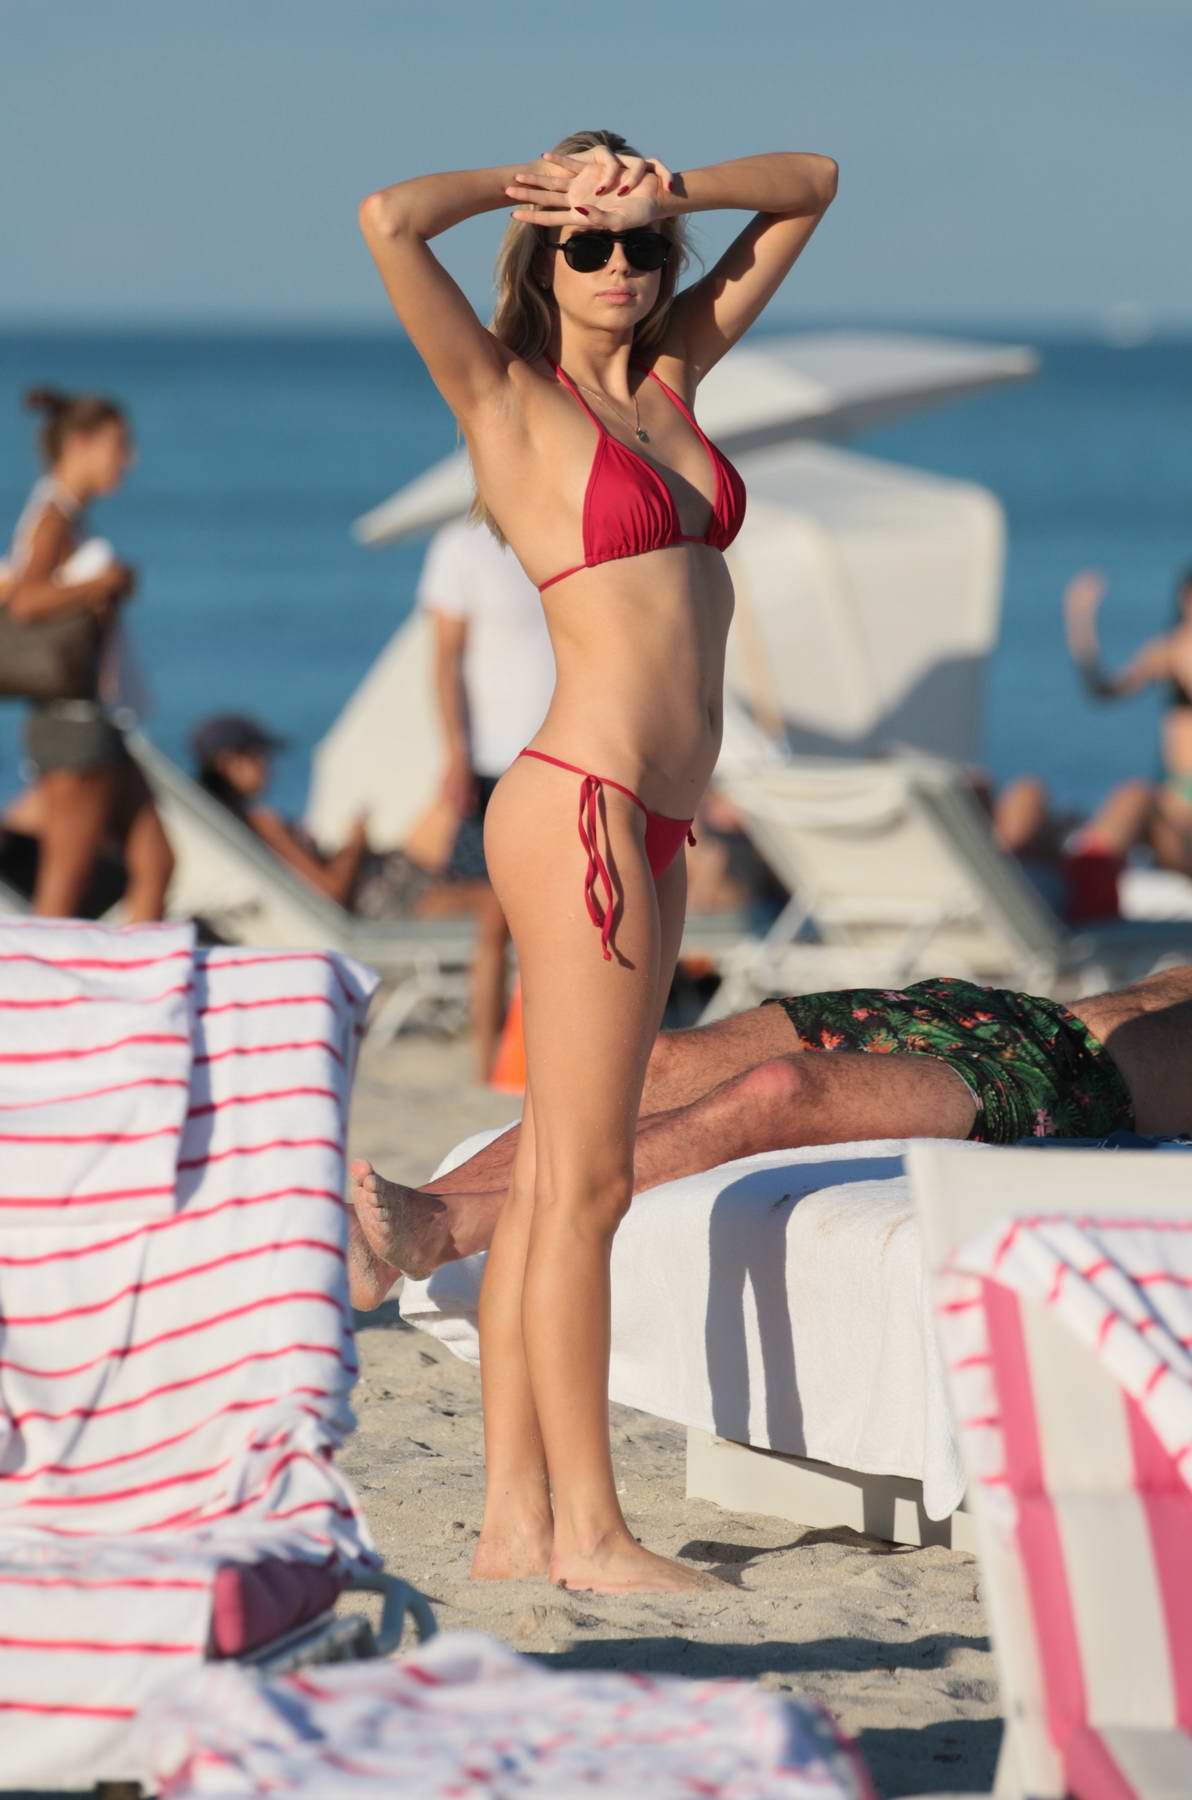 Louisa Warwick hits the beach in a red bikini in Miami, Florida